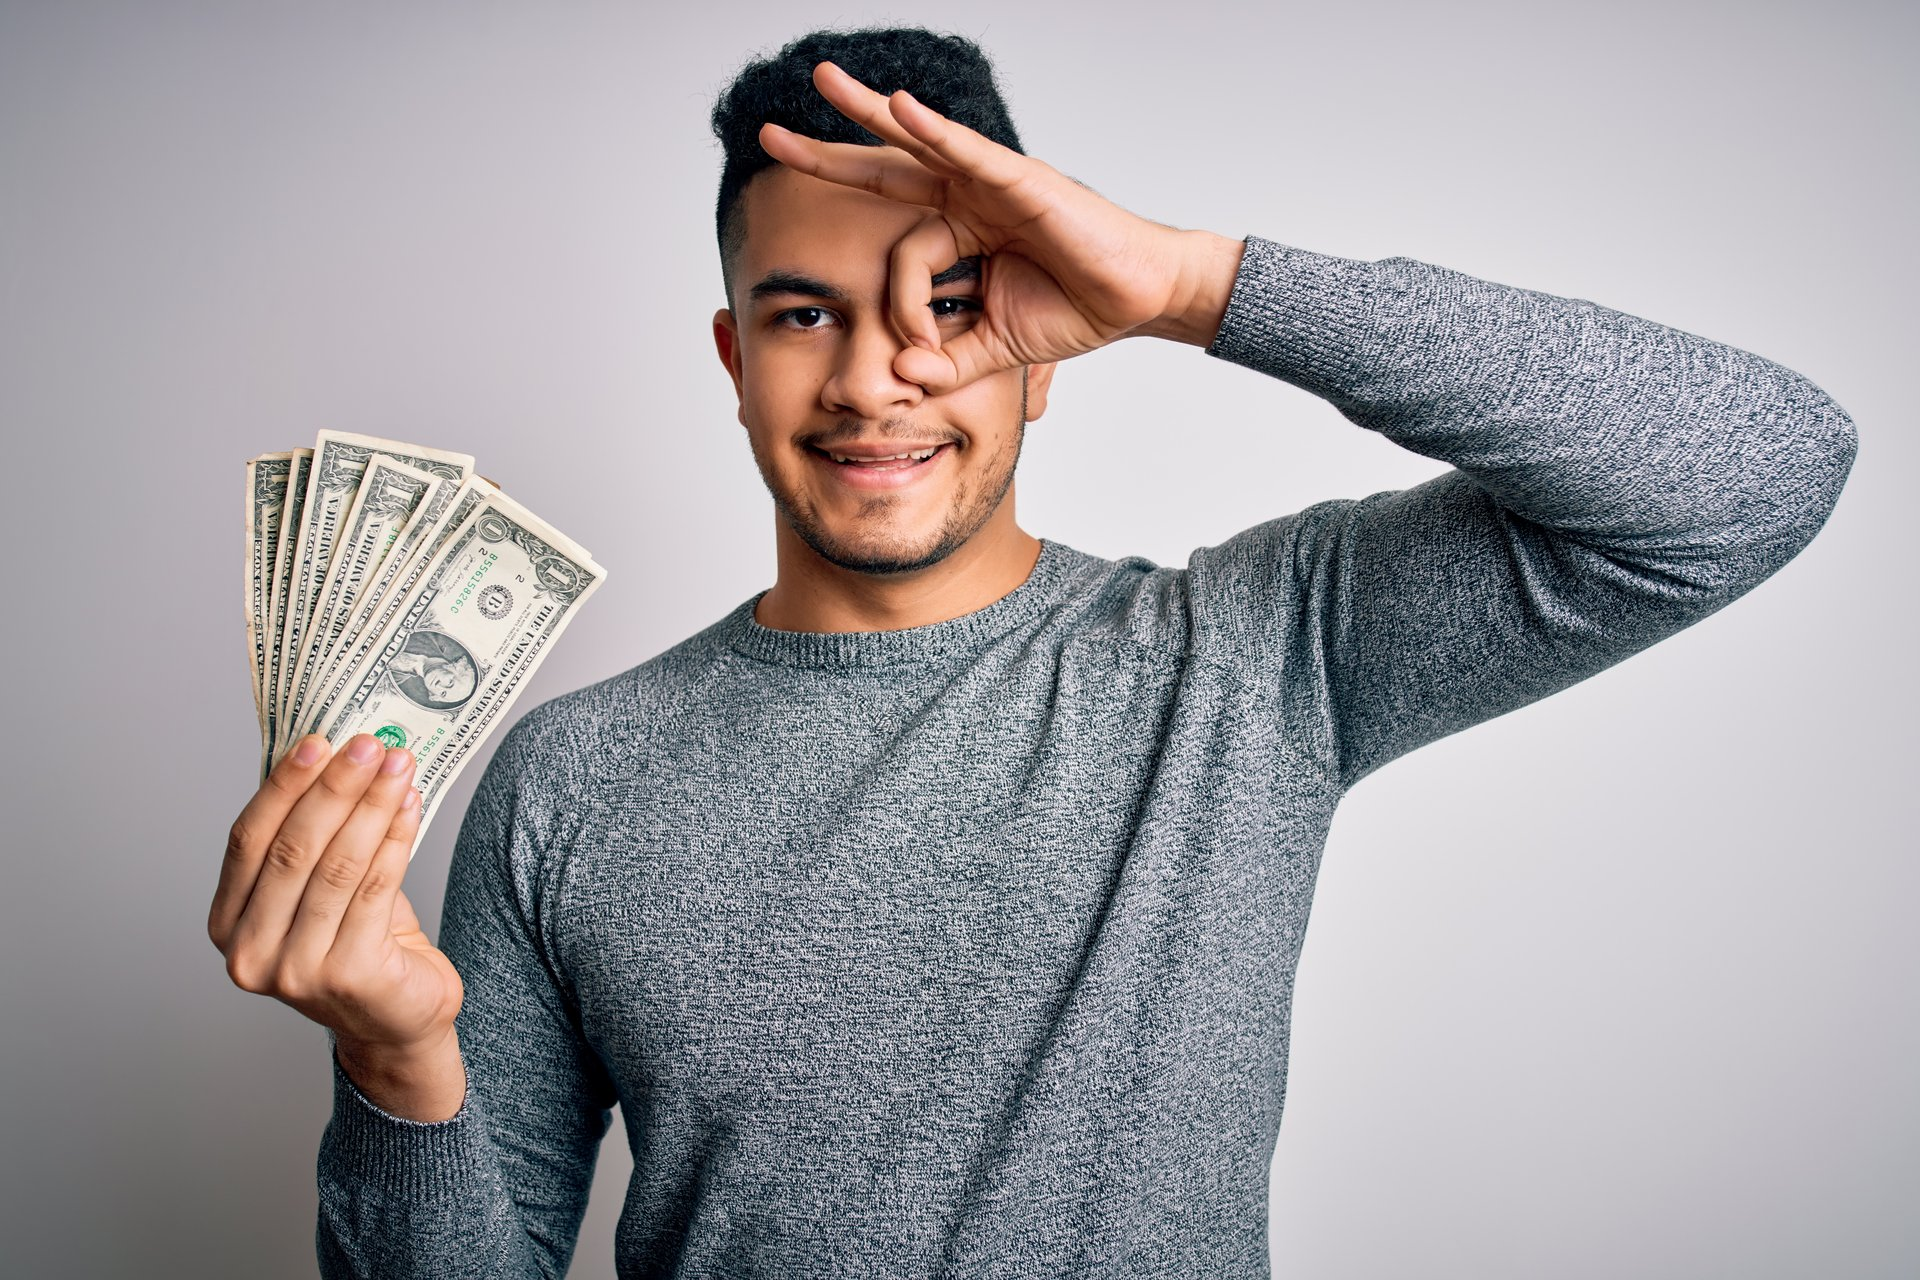 Man holding money and making OK sign